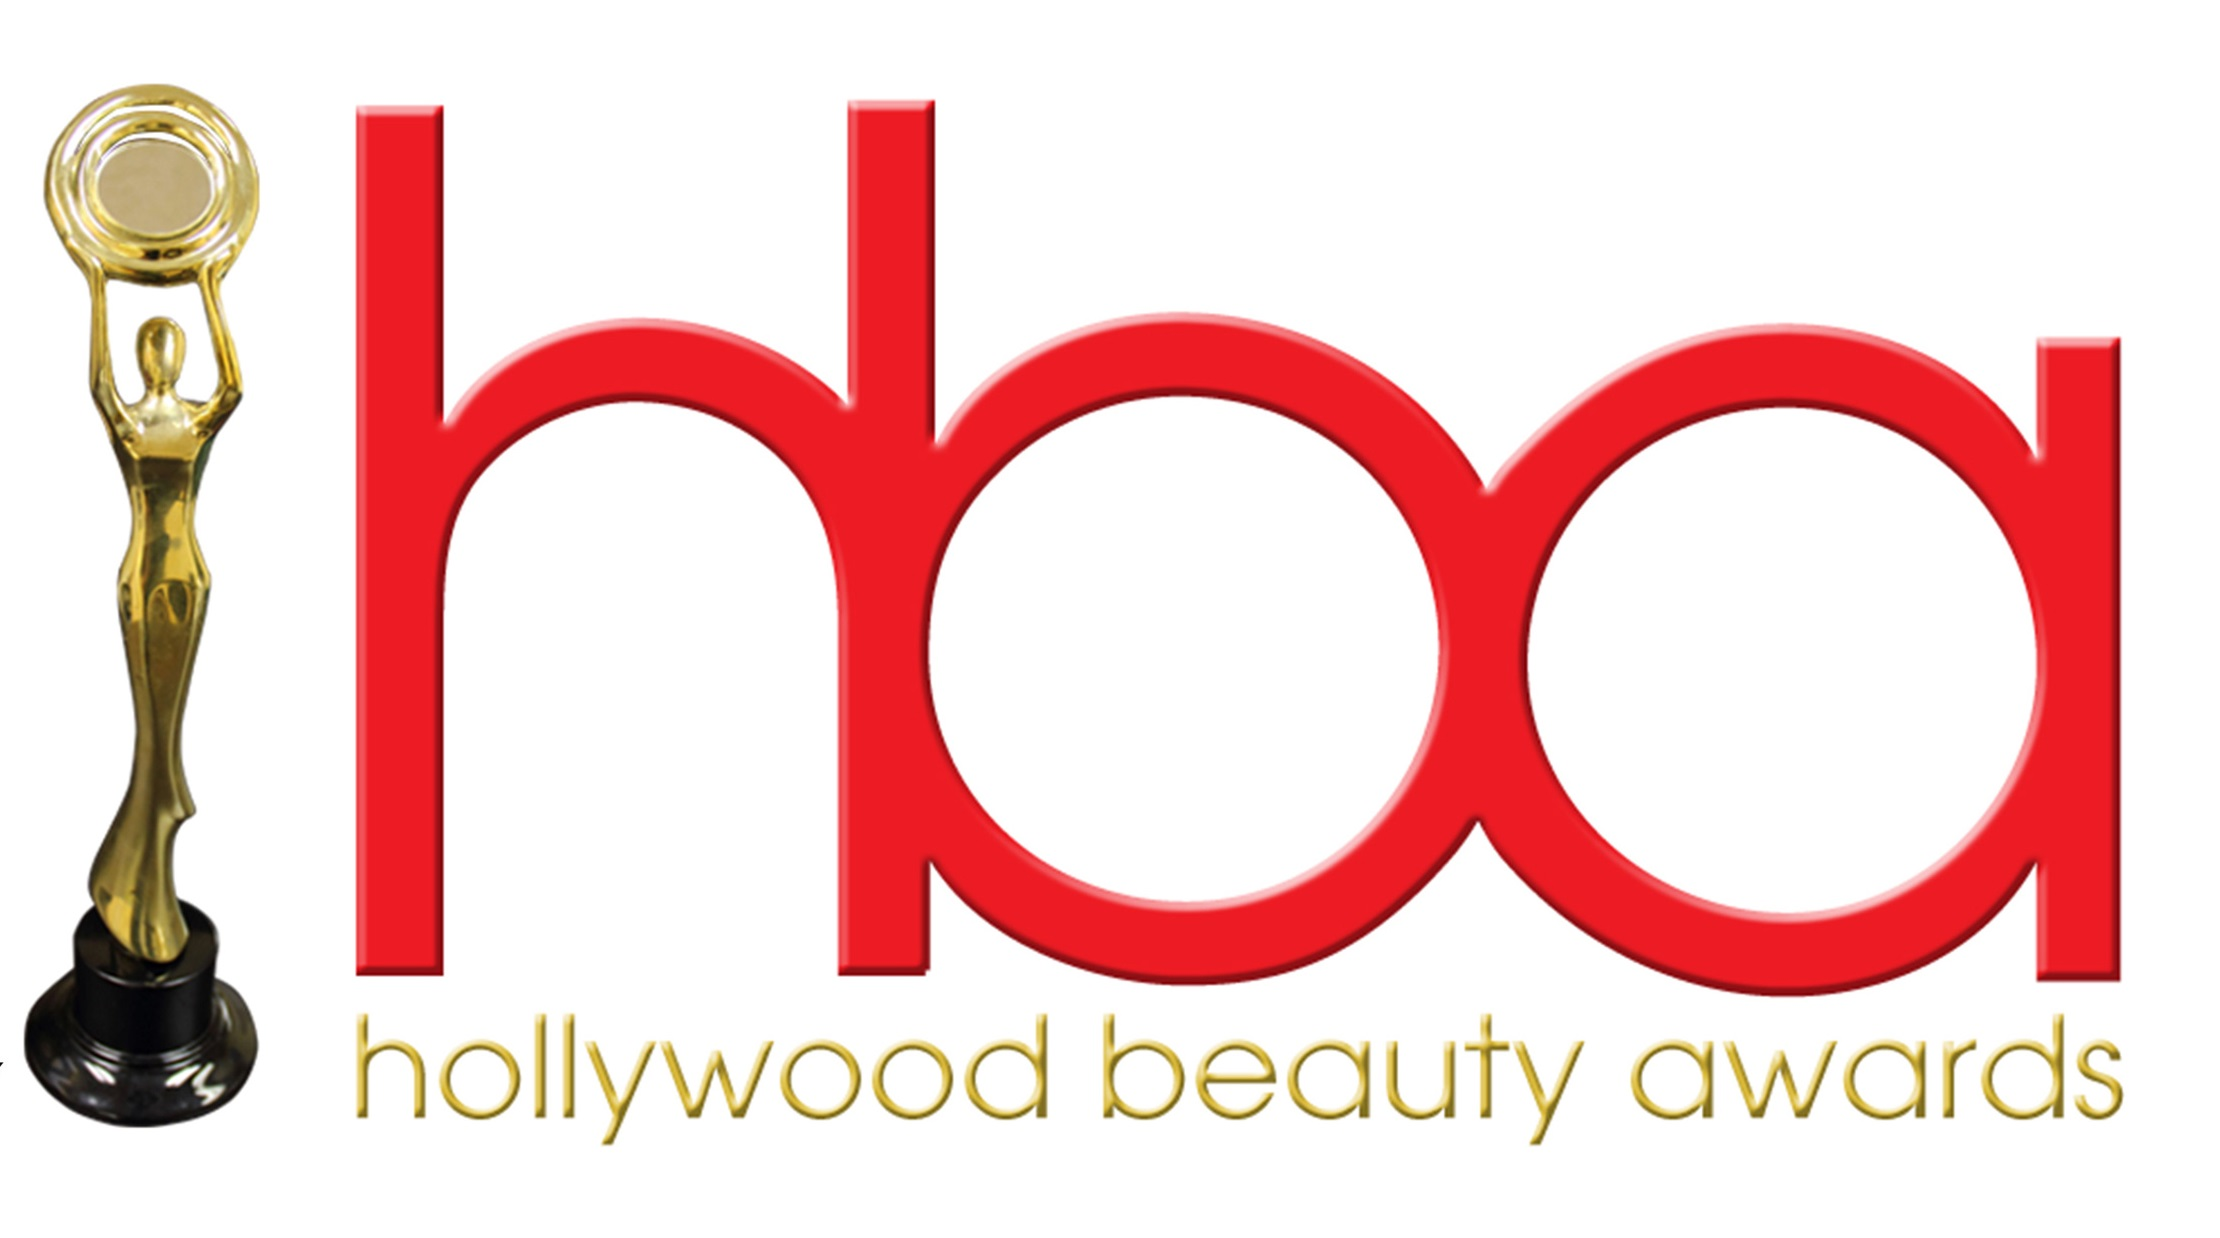 Hollywood Beauty Awards logo